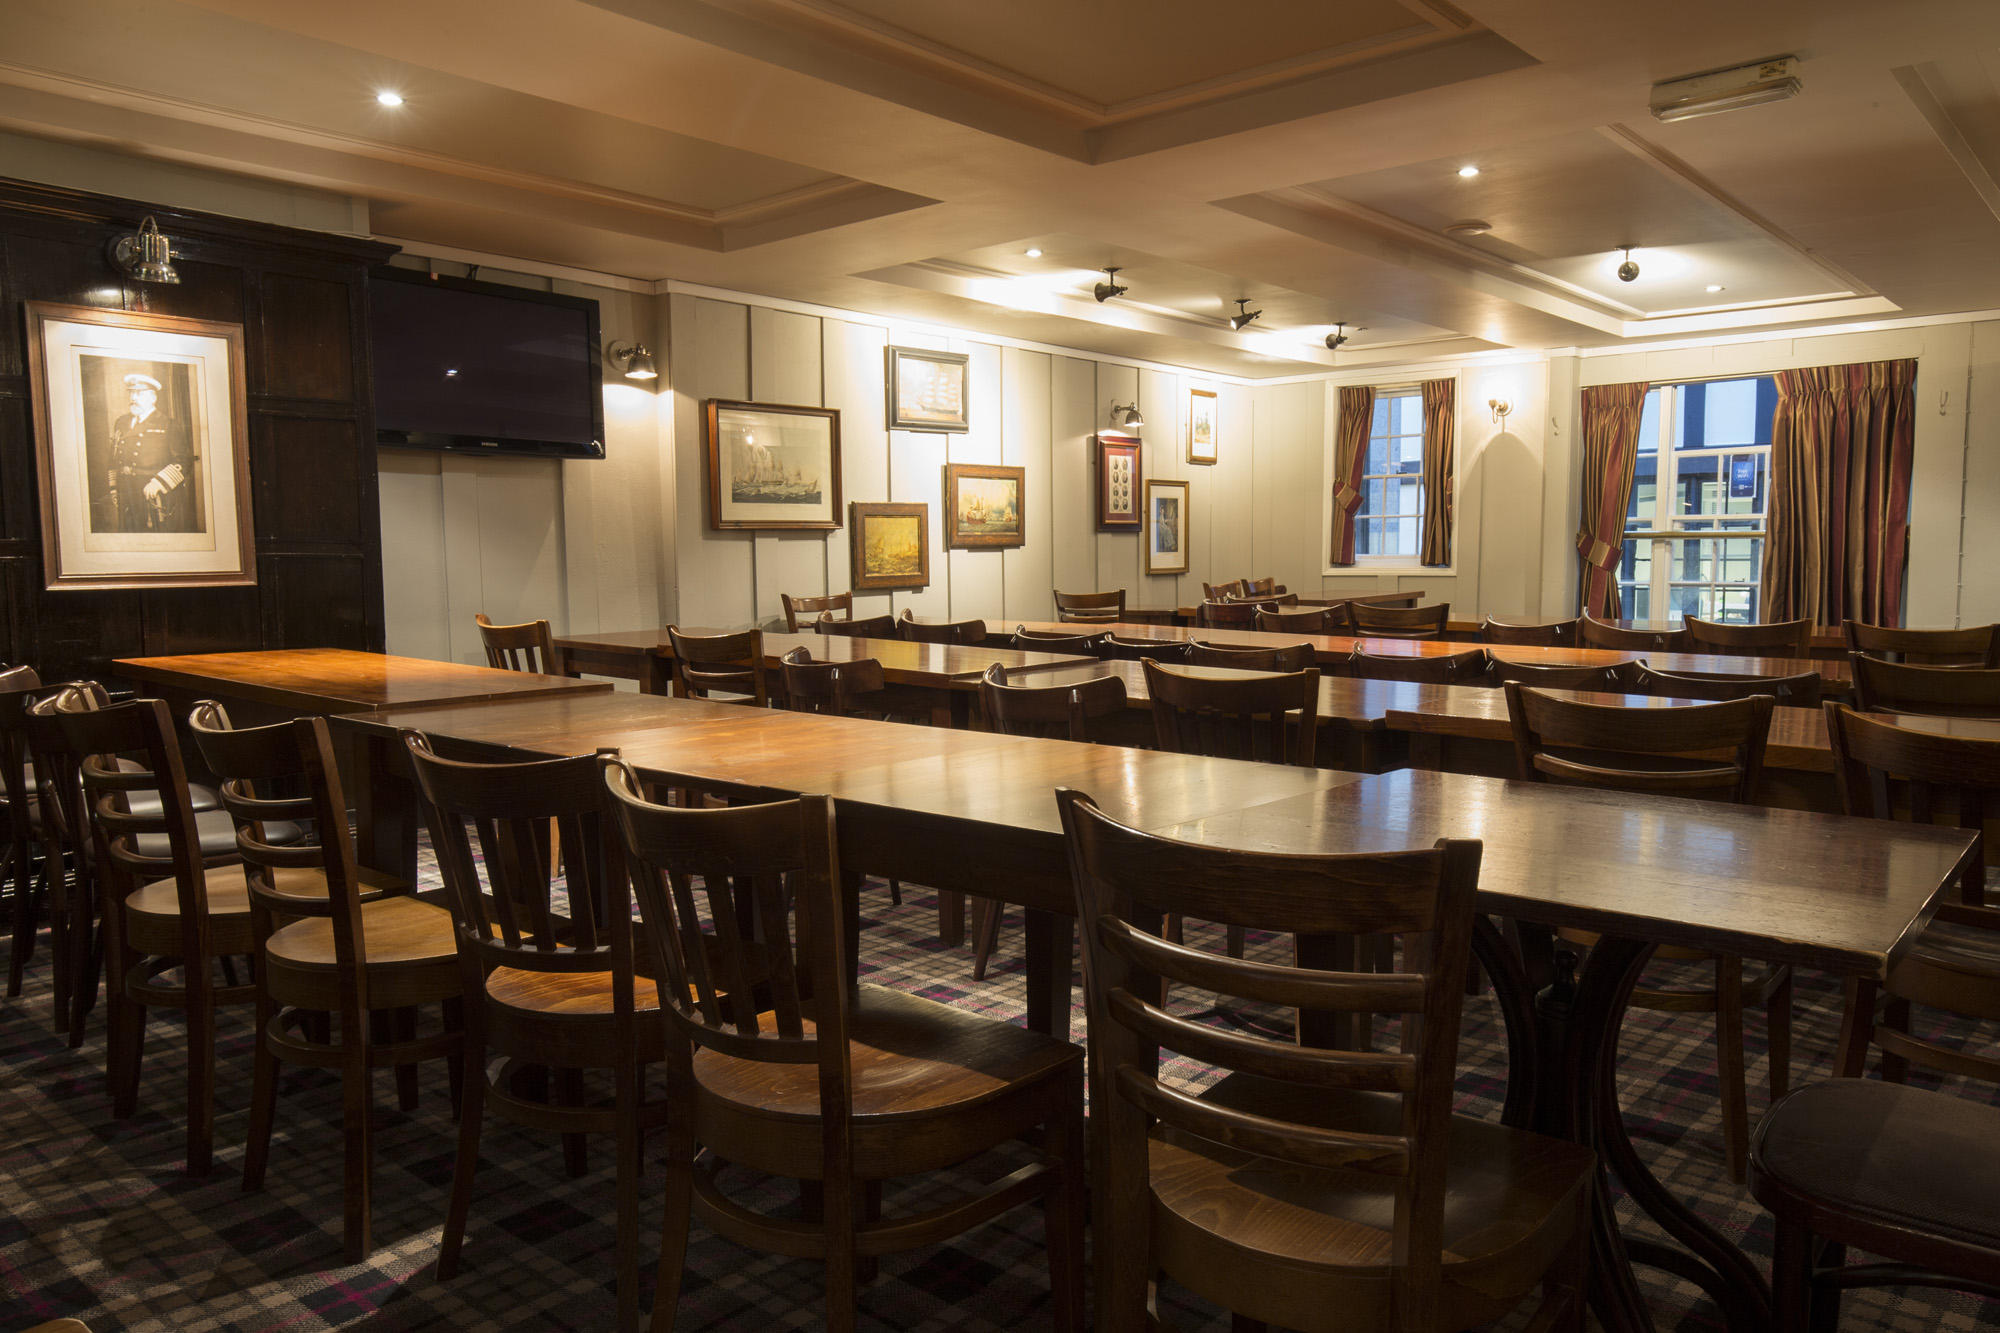 Pubs With Room Hire Near Me